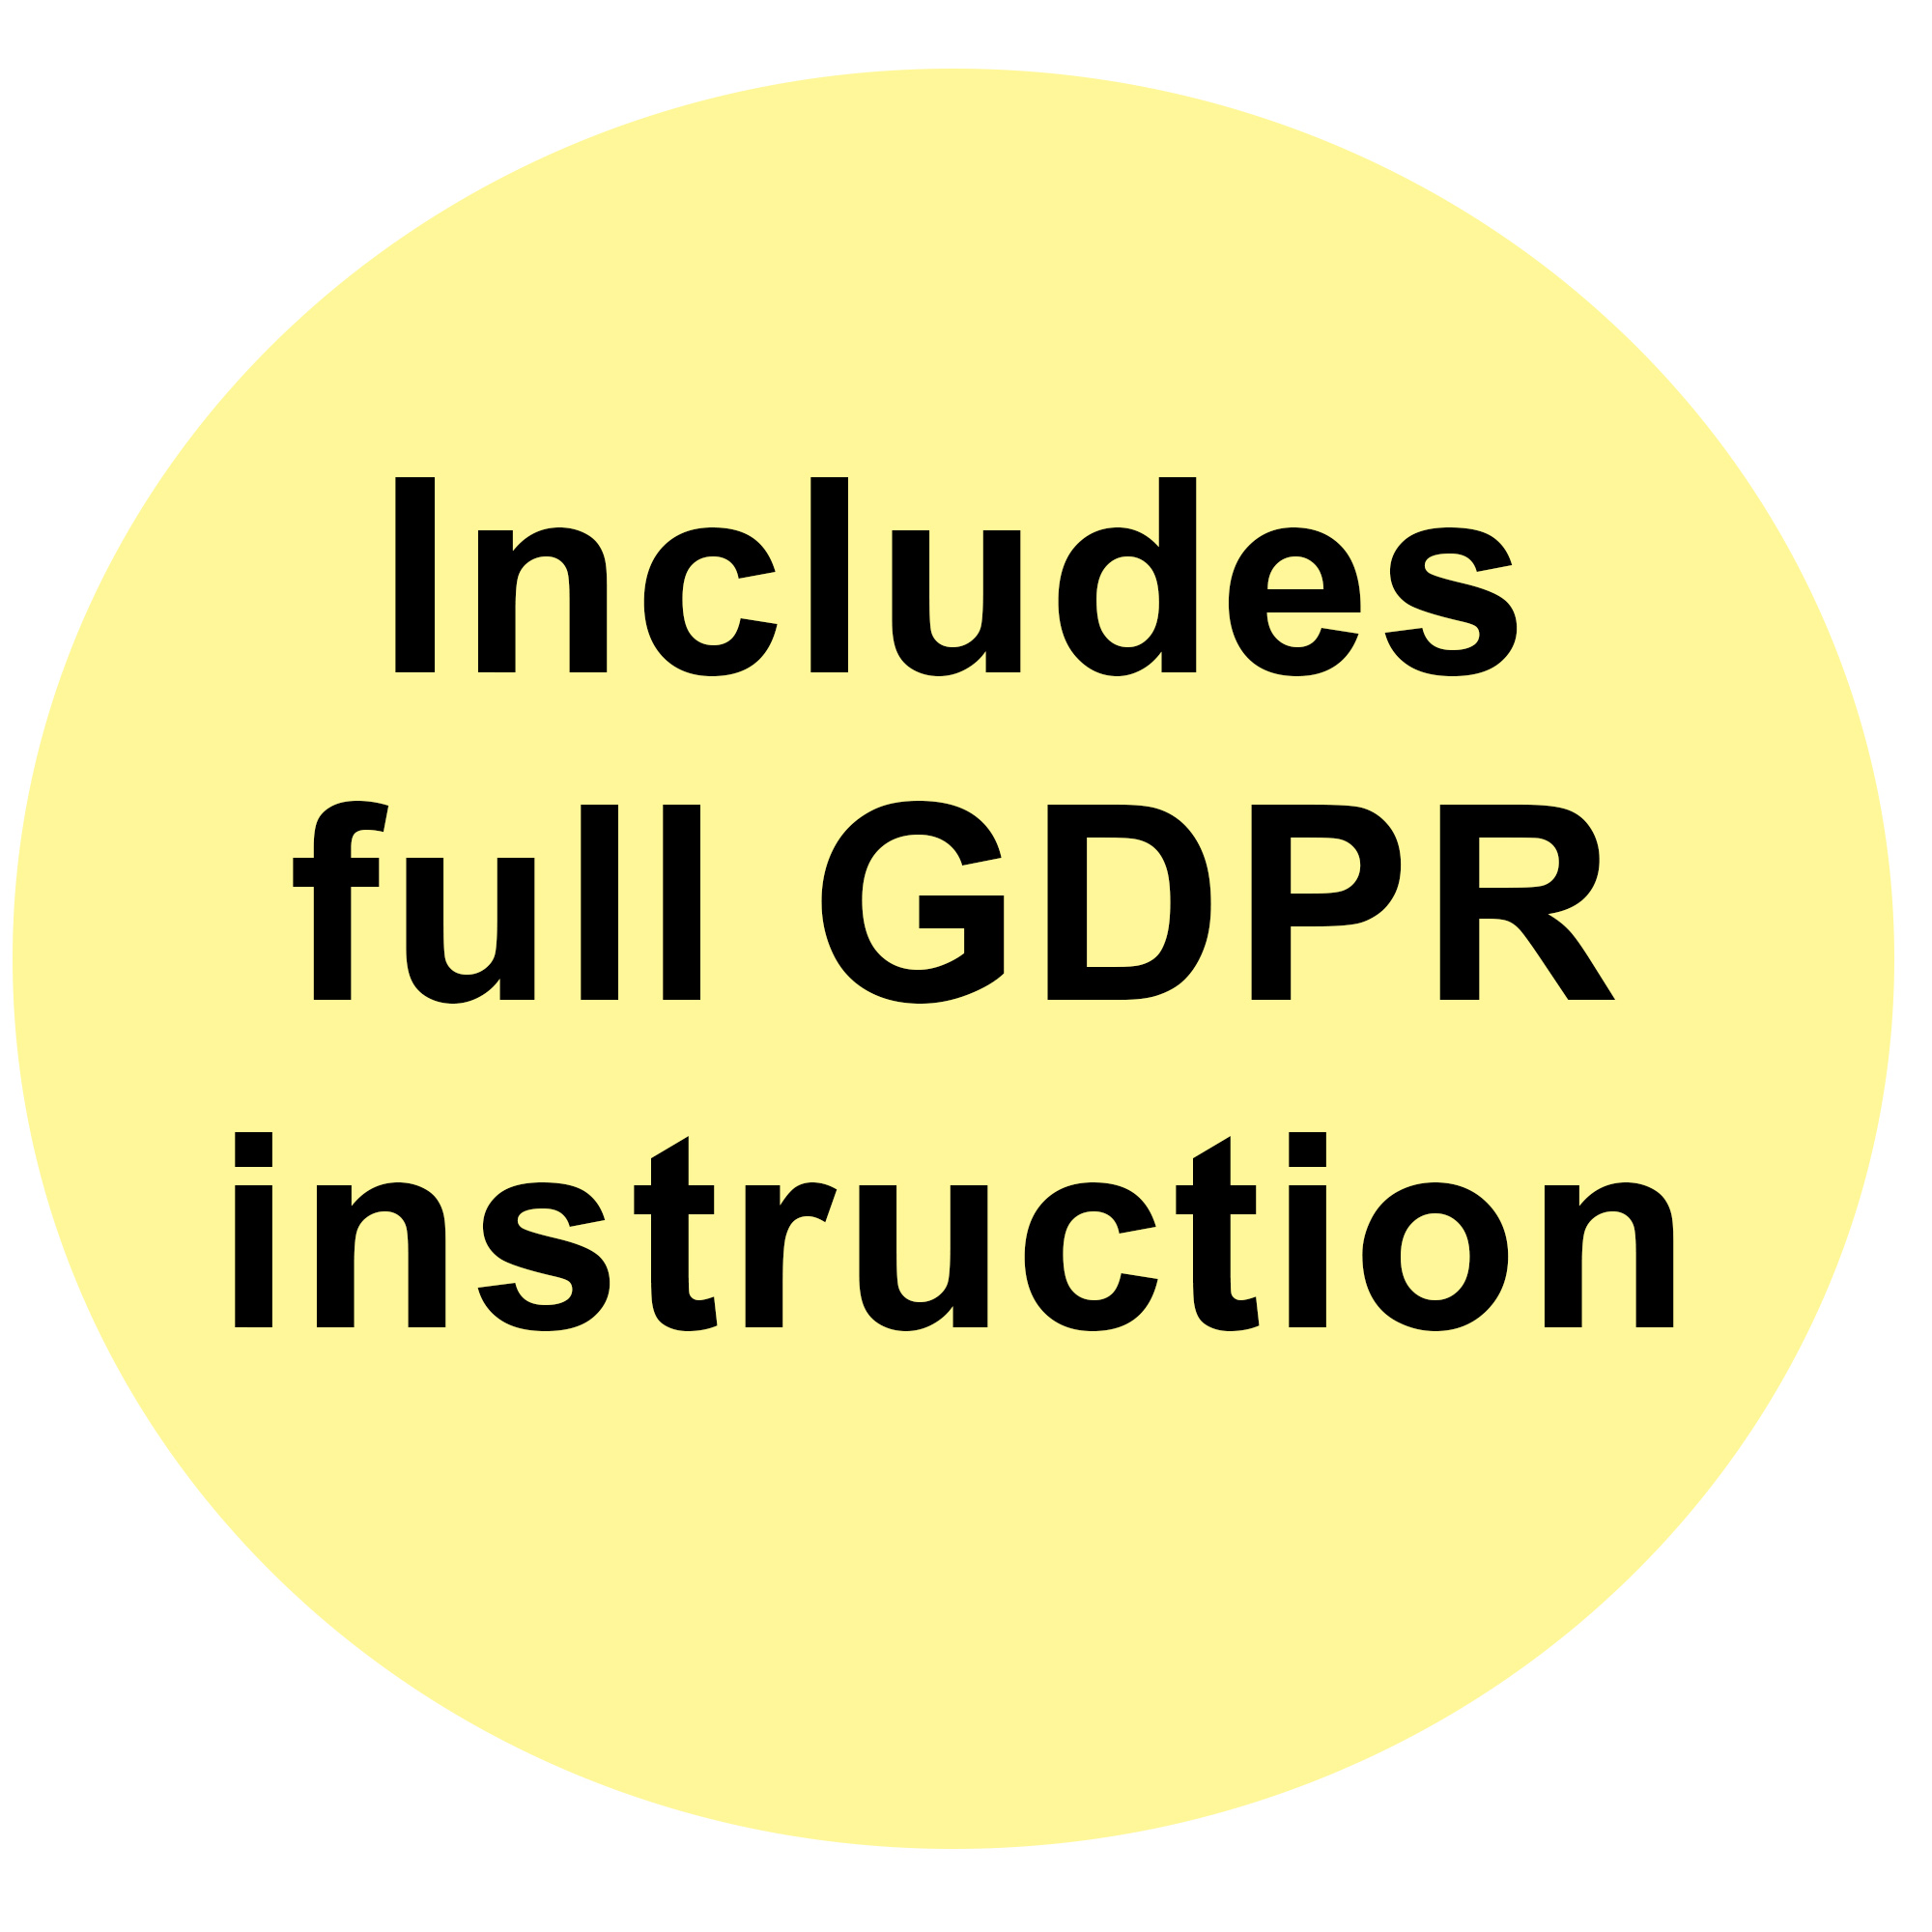 Includes full GDPR Instruction